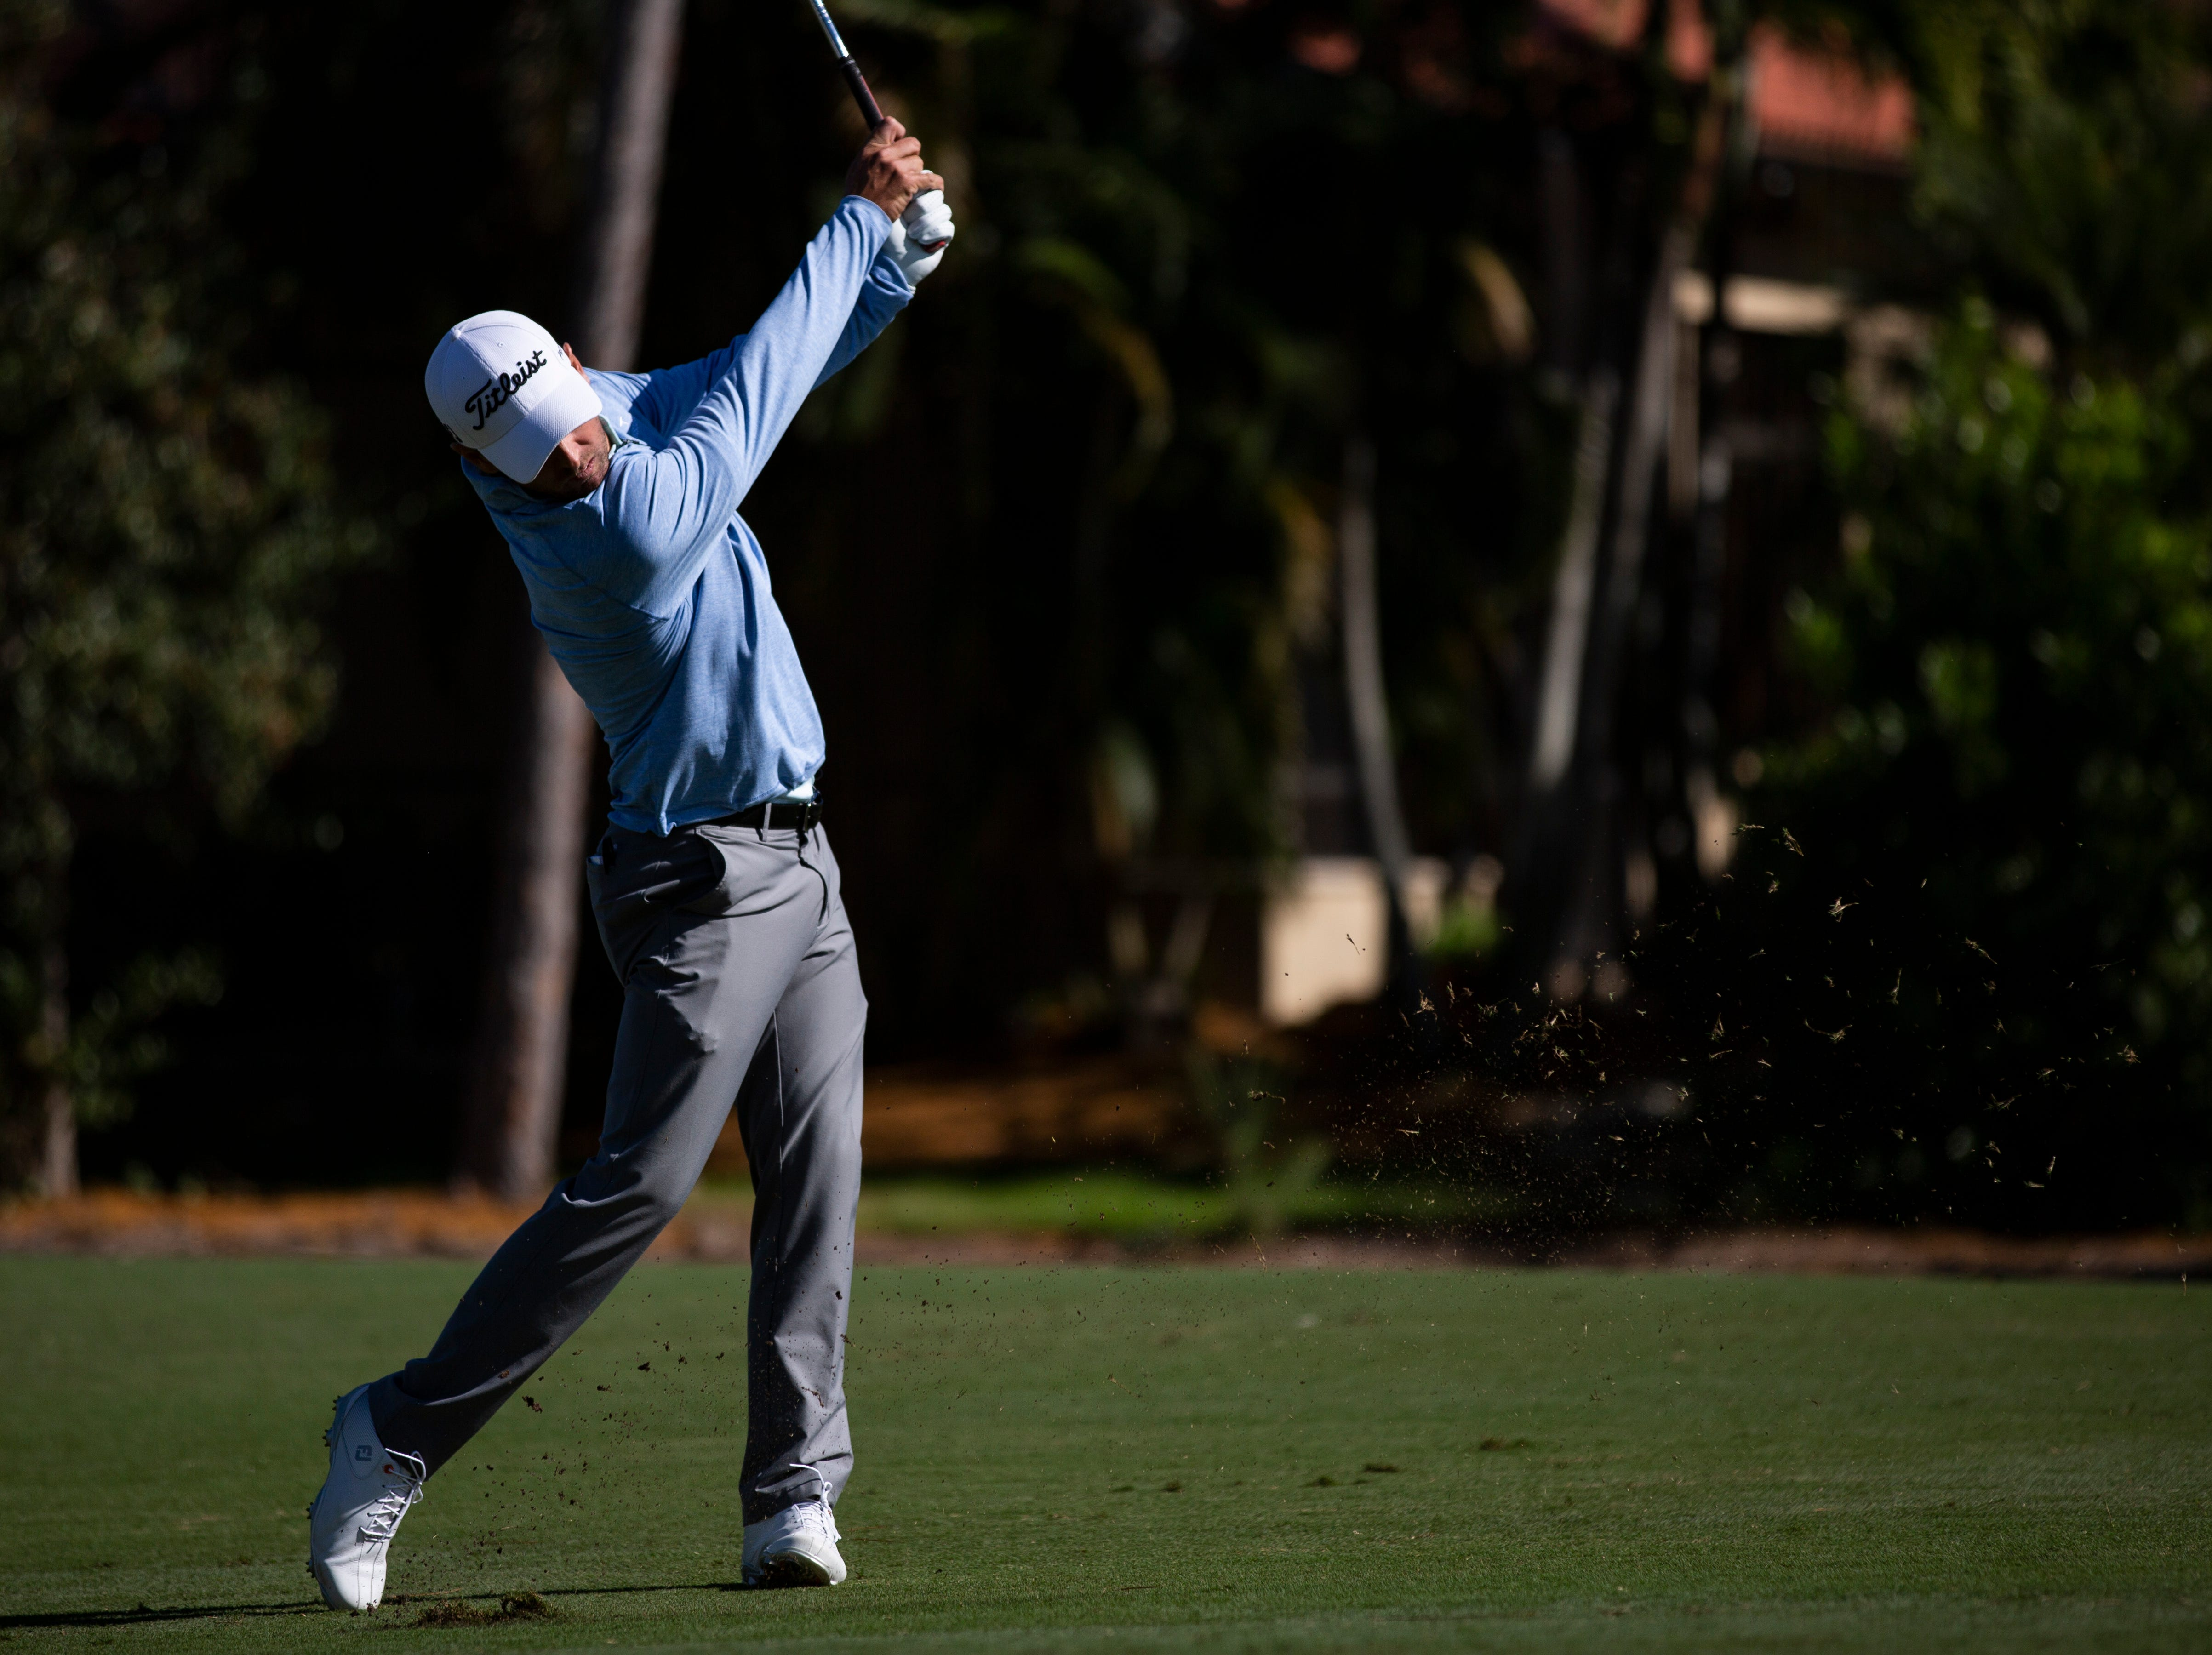 Charles Howell III of Georgia, tees off during the first Pro - Amateur round of the 30th annual QBE Shootout at Tiburón Golf Club on Wednesday, Dec. 5, 2018.